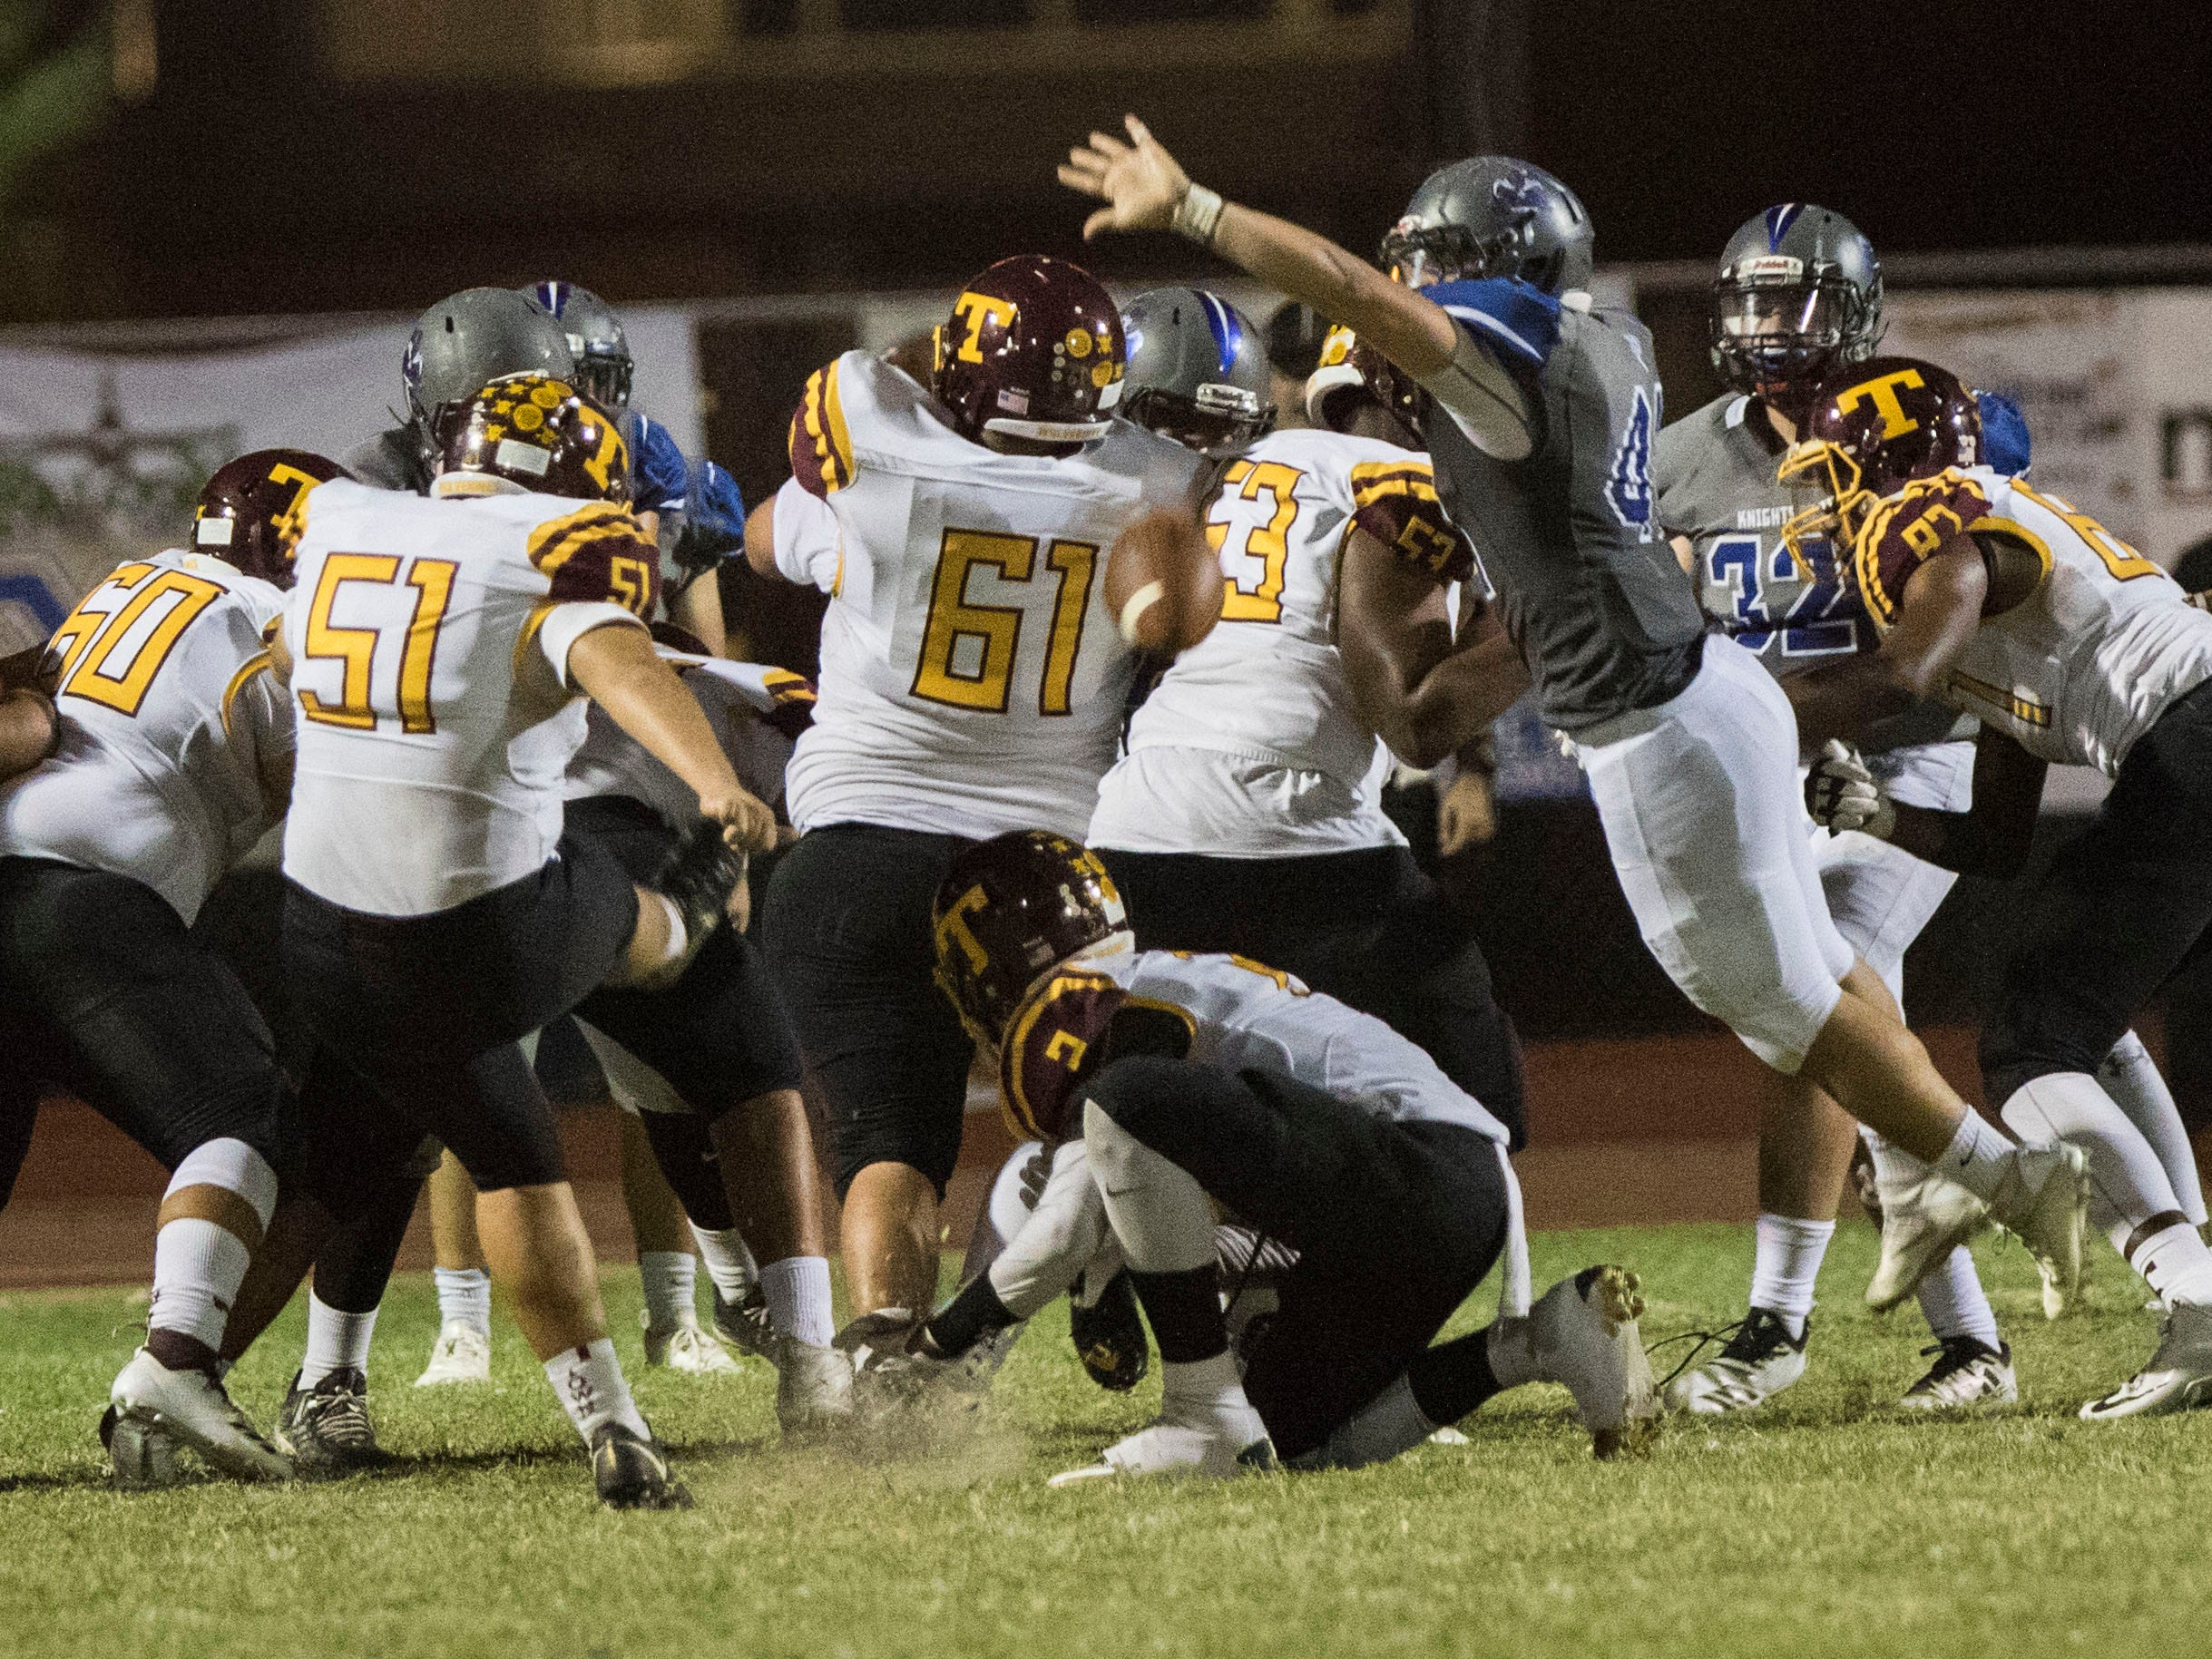 Westview's Jaden Moss attempts to block an field goal but just misses against Tolleson's Jose Deharo during their game in Avondale Friday, Sept. 28, 2018. #azhsfb